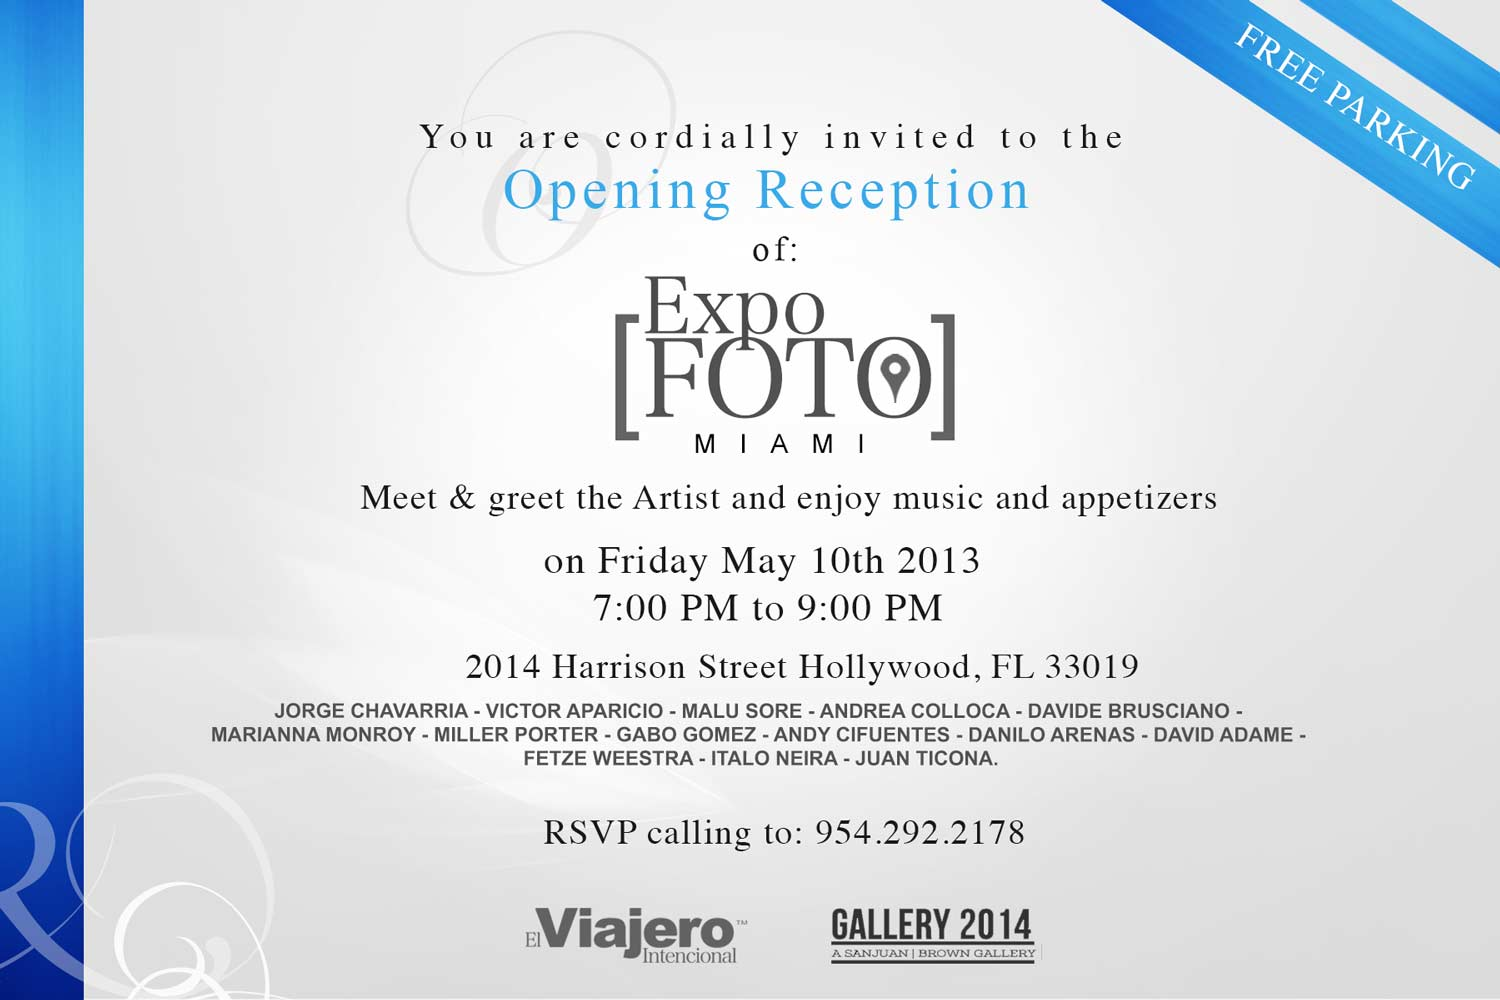 invitation-opening-reception-expofoto-miami-gallery-2014-1024x682.jpg